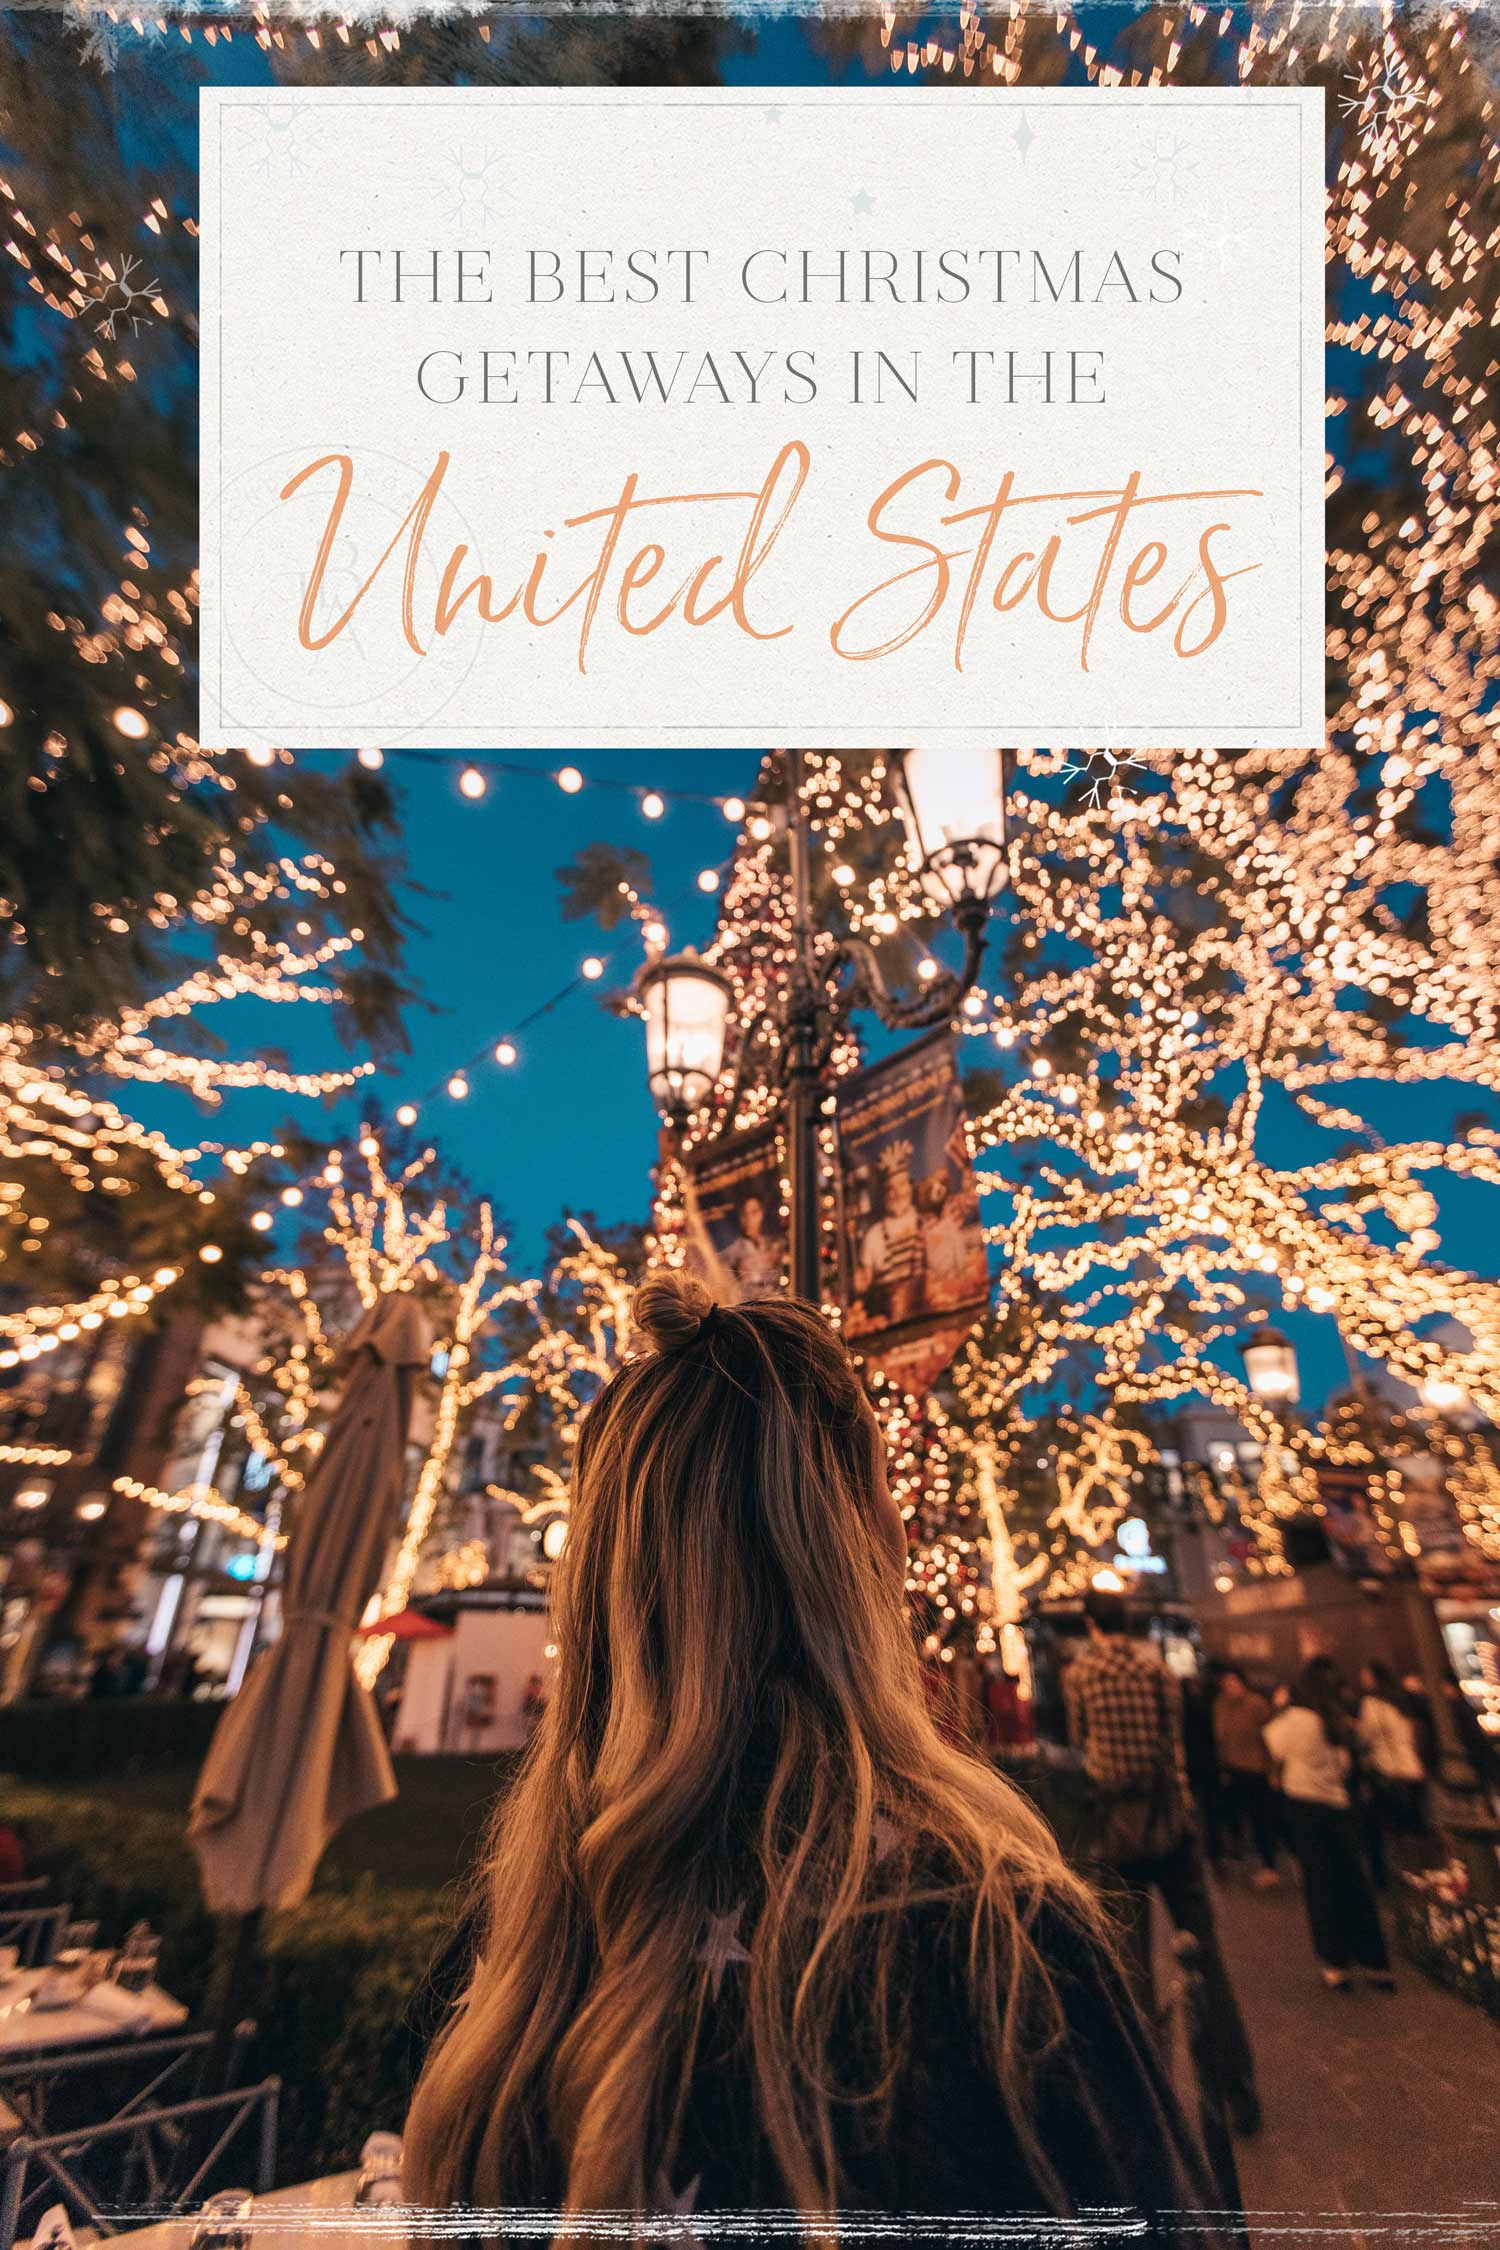 The Best Christmas Destinations for a Visit to the USA